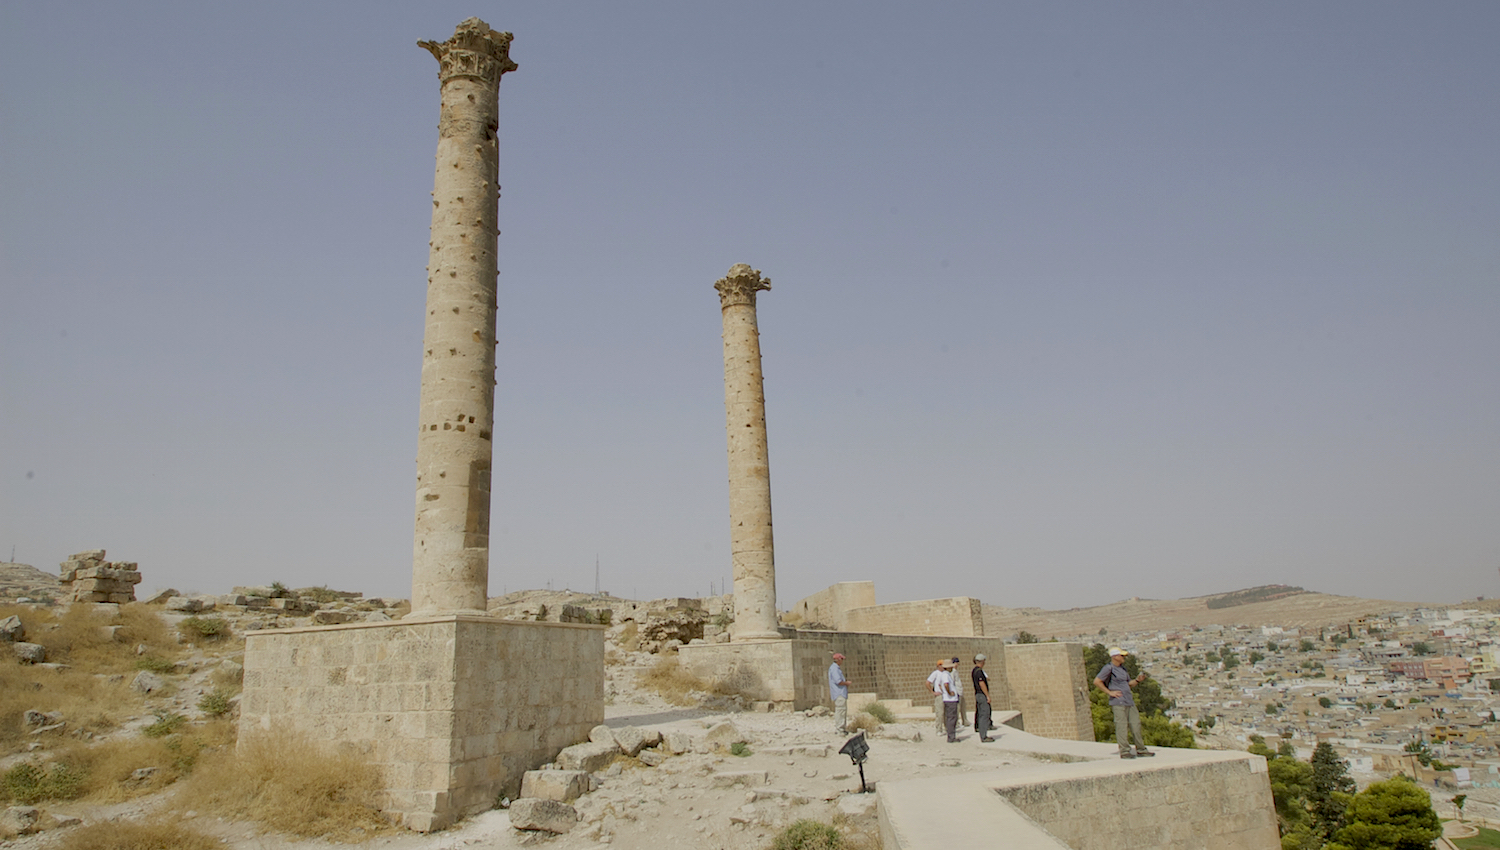 Two columns rise from Urfa's citadel.